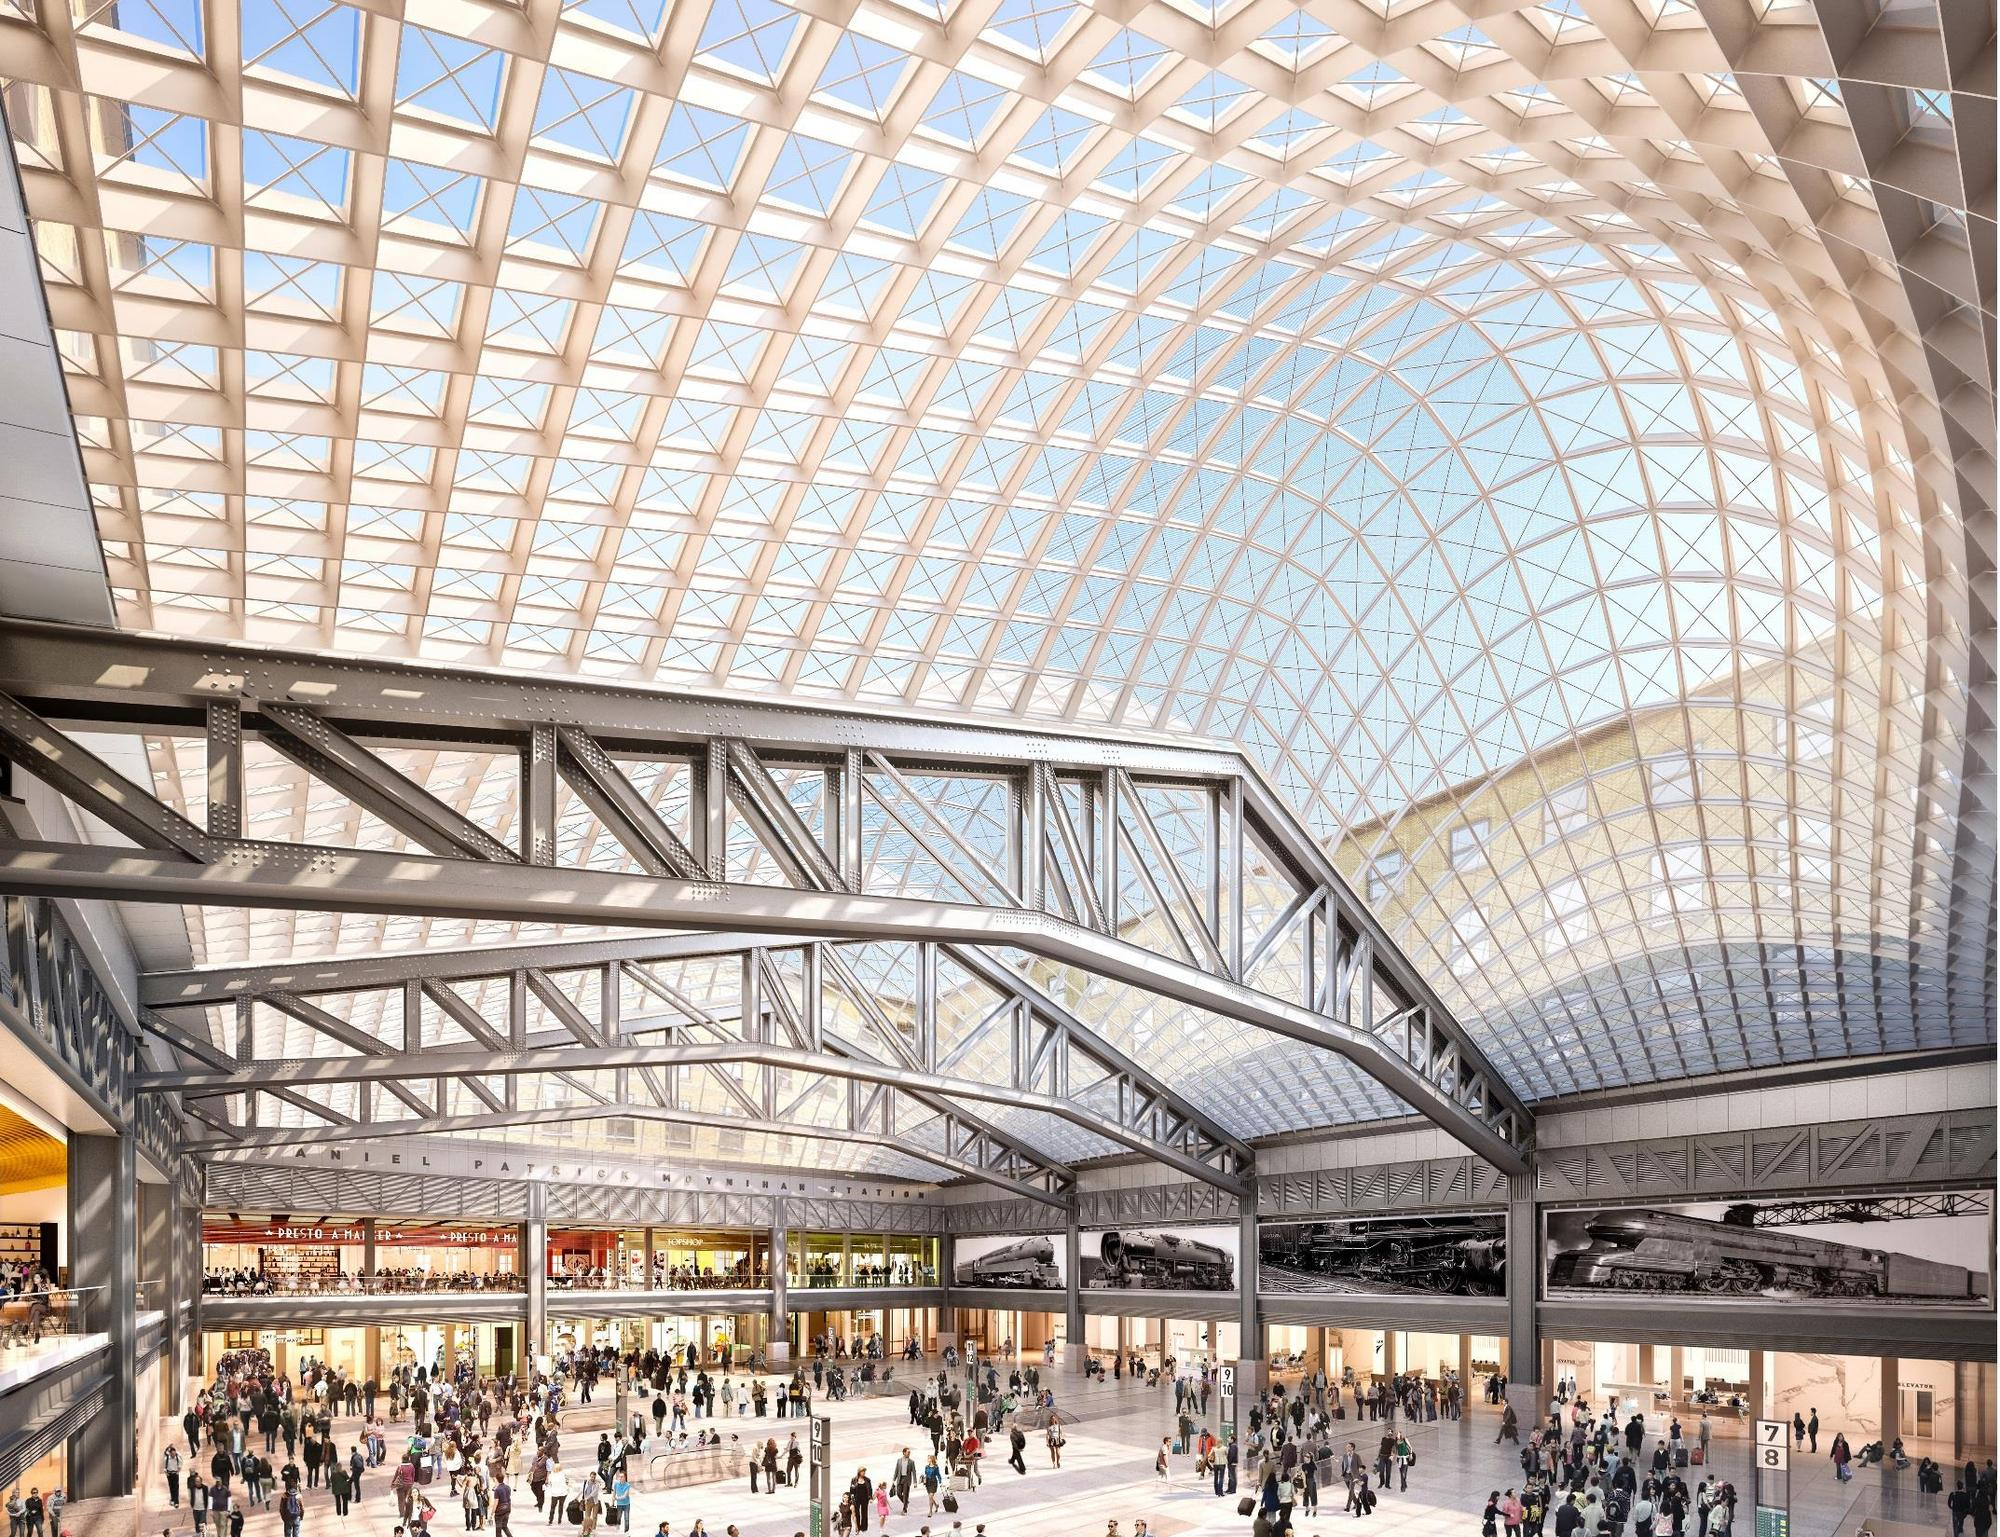 New Renderings of Penn Station's $1.6 Billion Renovation Released as Project Gets Greenlight